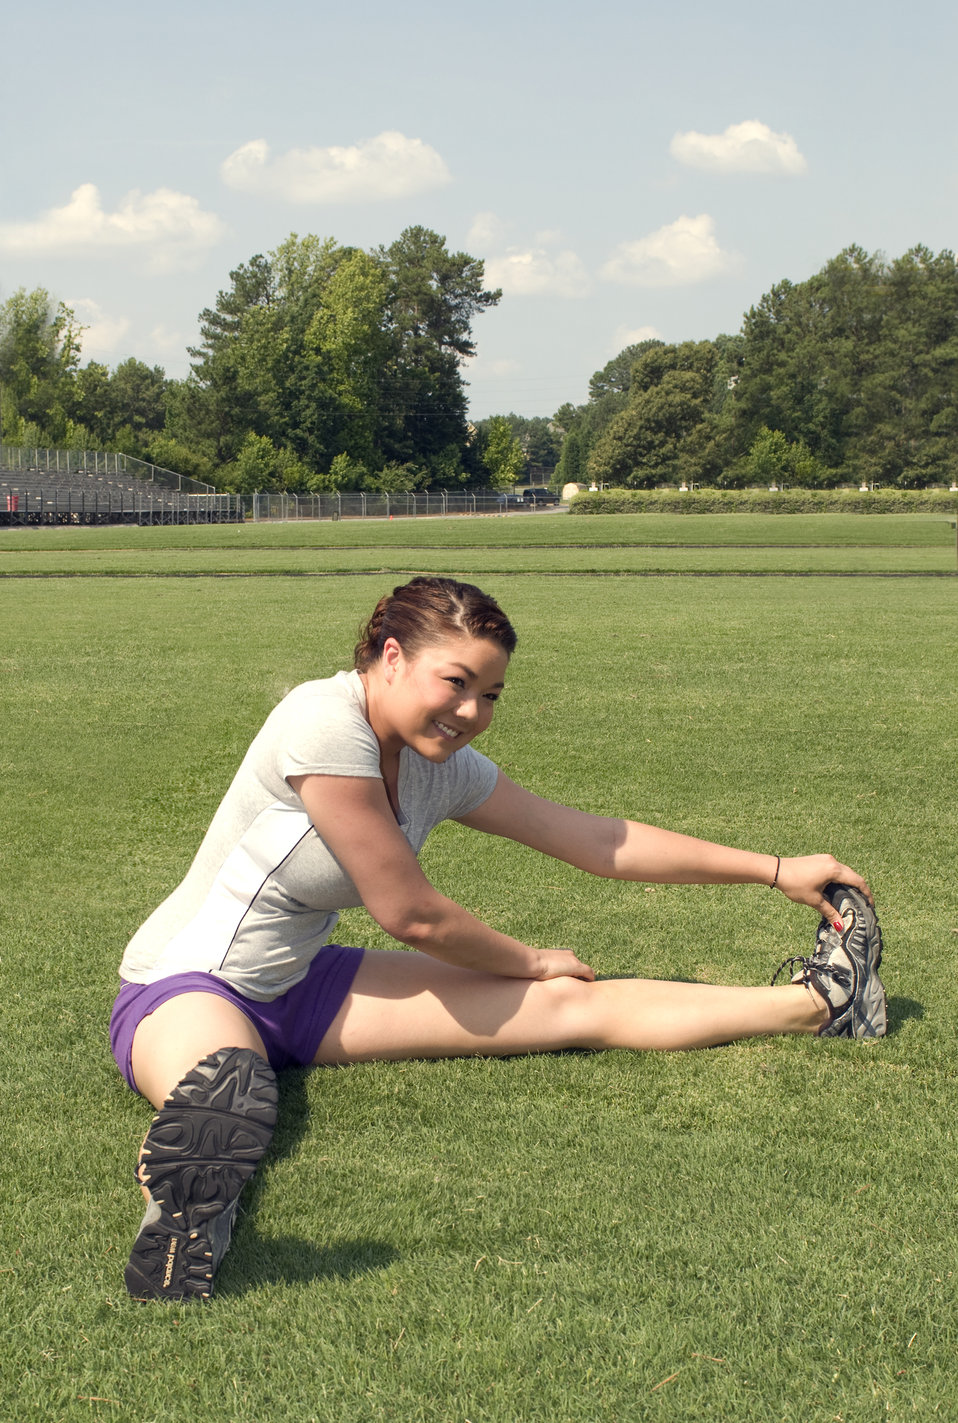 A young woman stretching before exercise